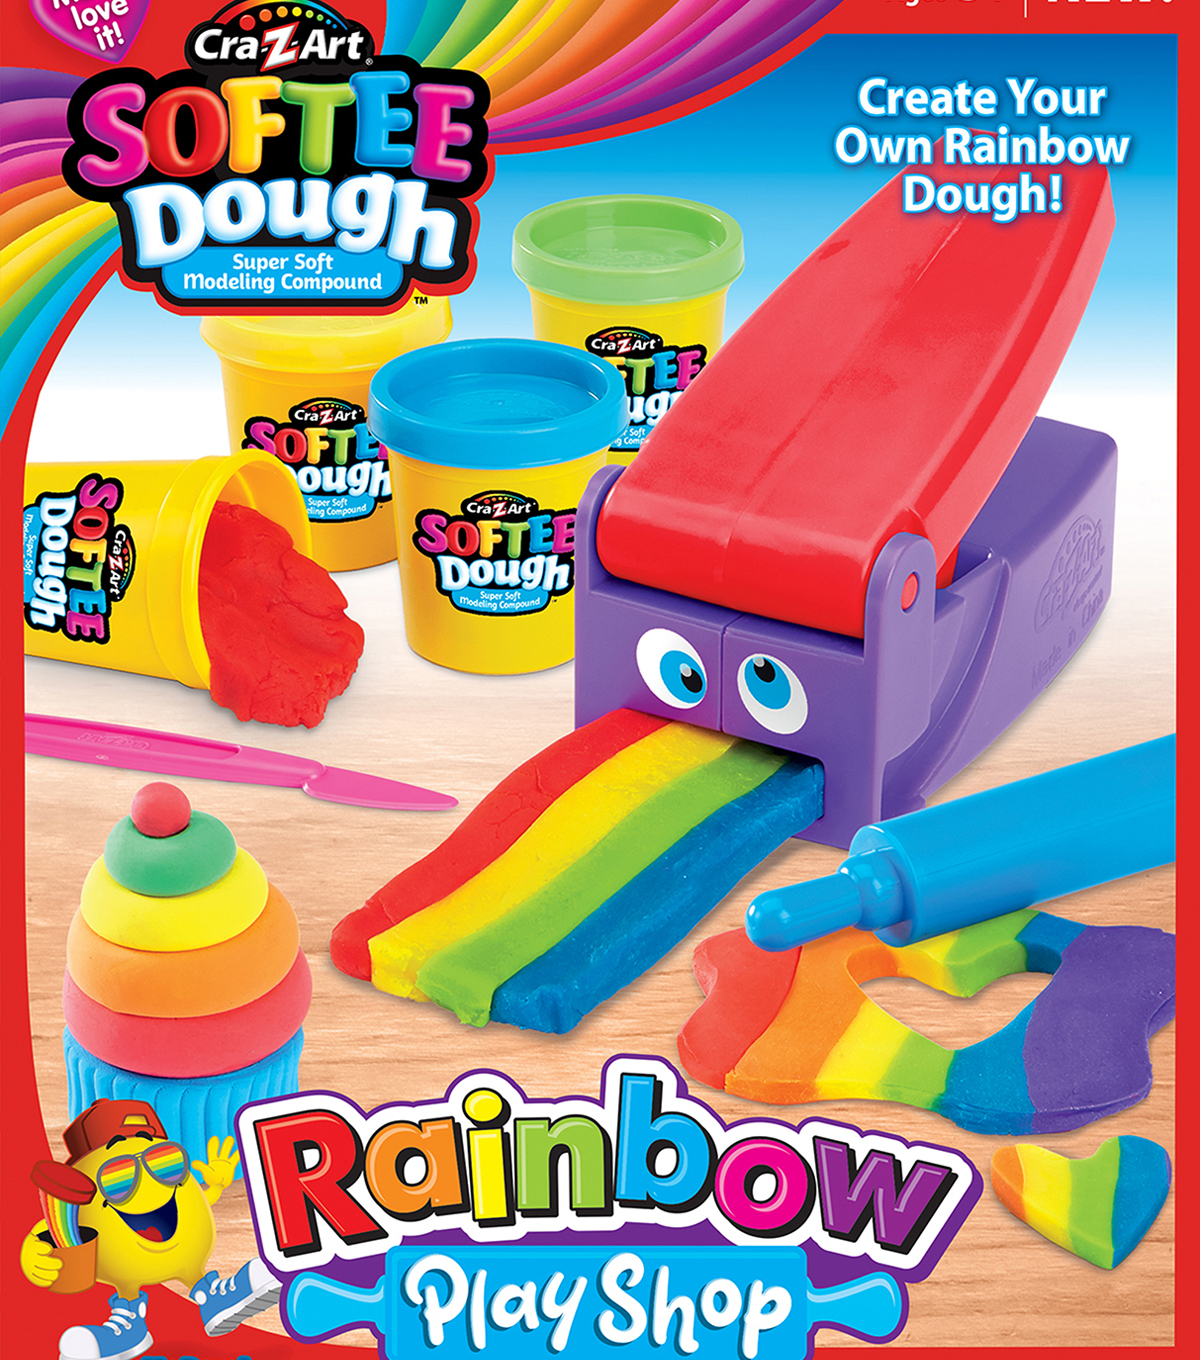 CraZart Softee Dough Rainbow Magic